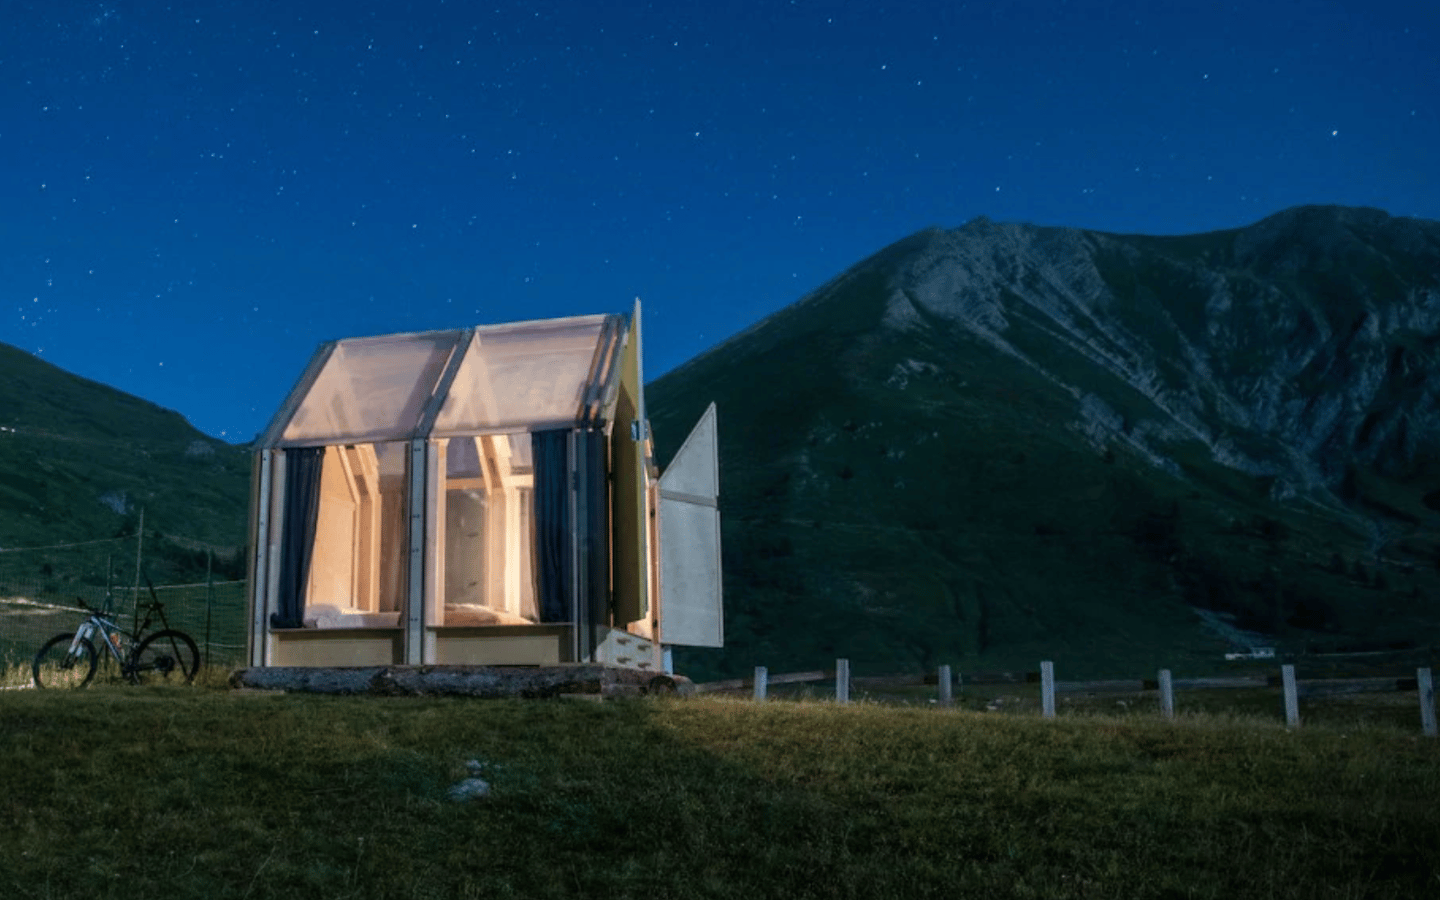 This striking transparent-roof cabin is only 6 square meters (65 sq ft) large and is currently being used as a unique glamping experience in the Italian Alps